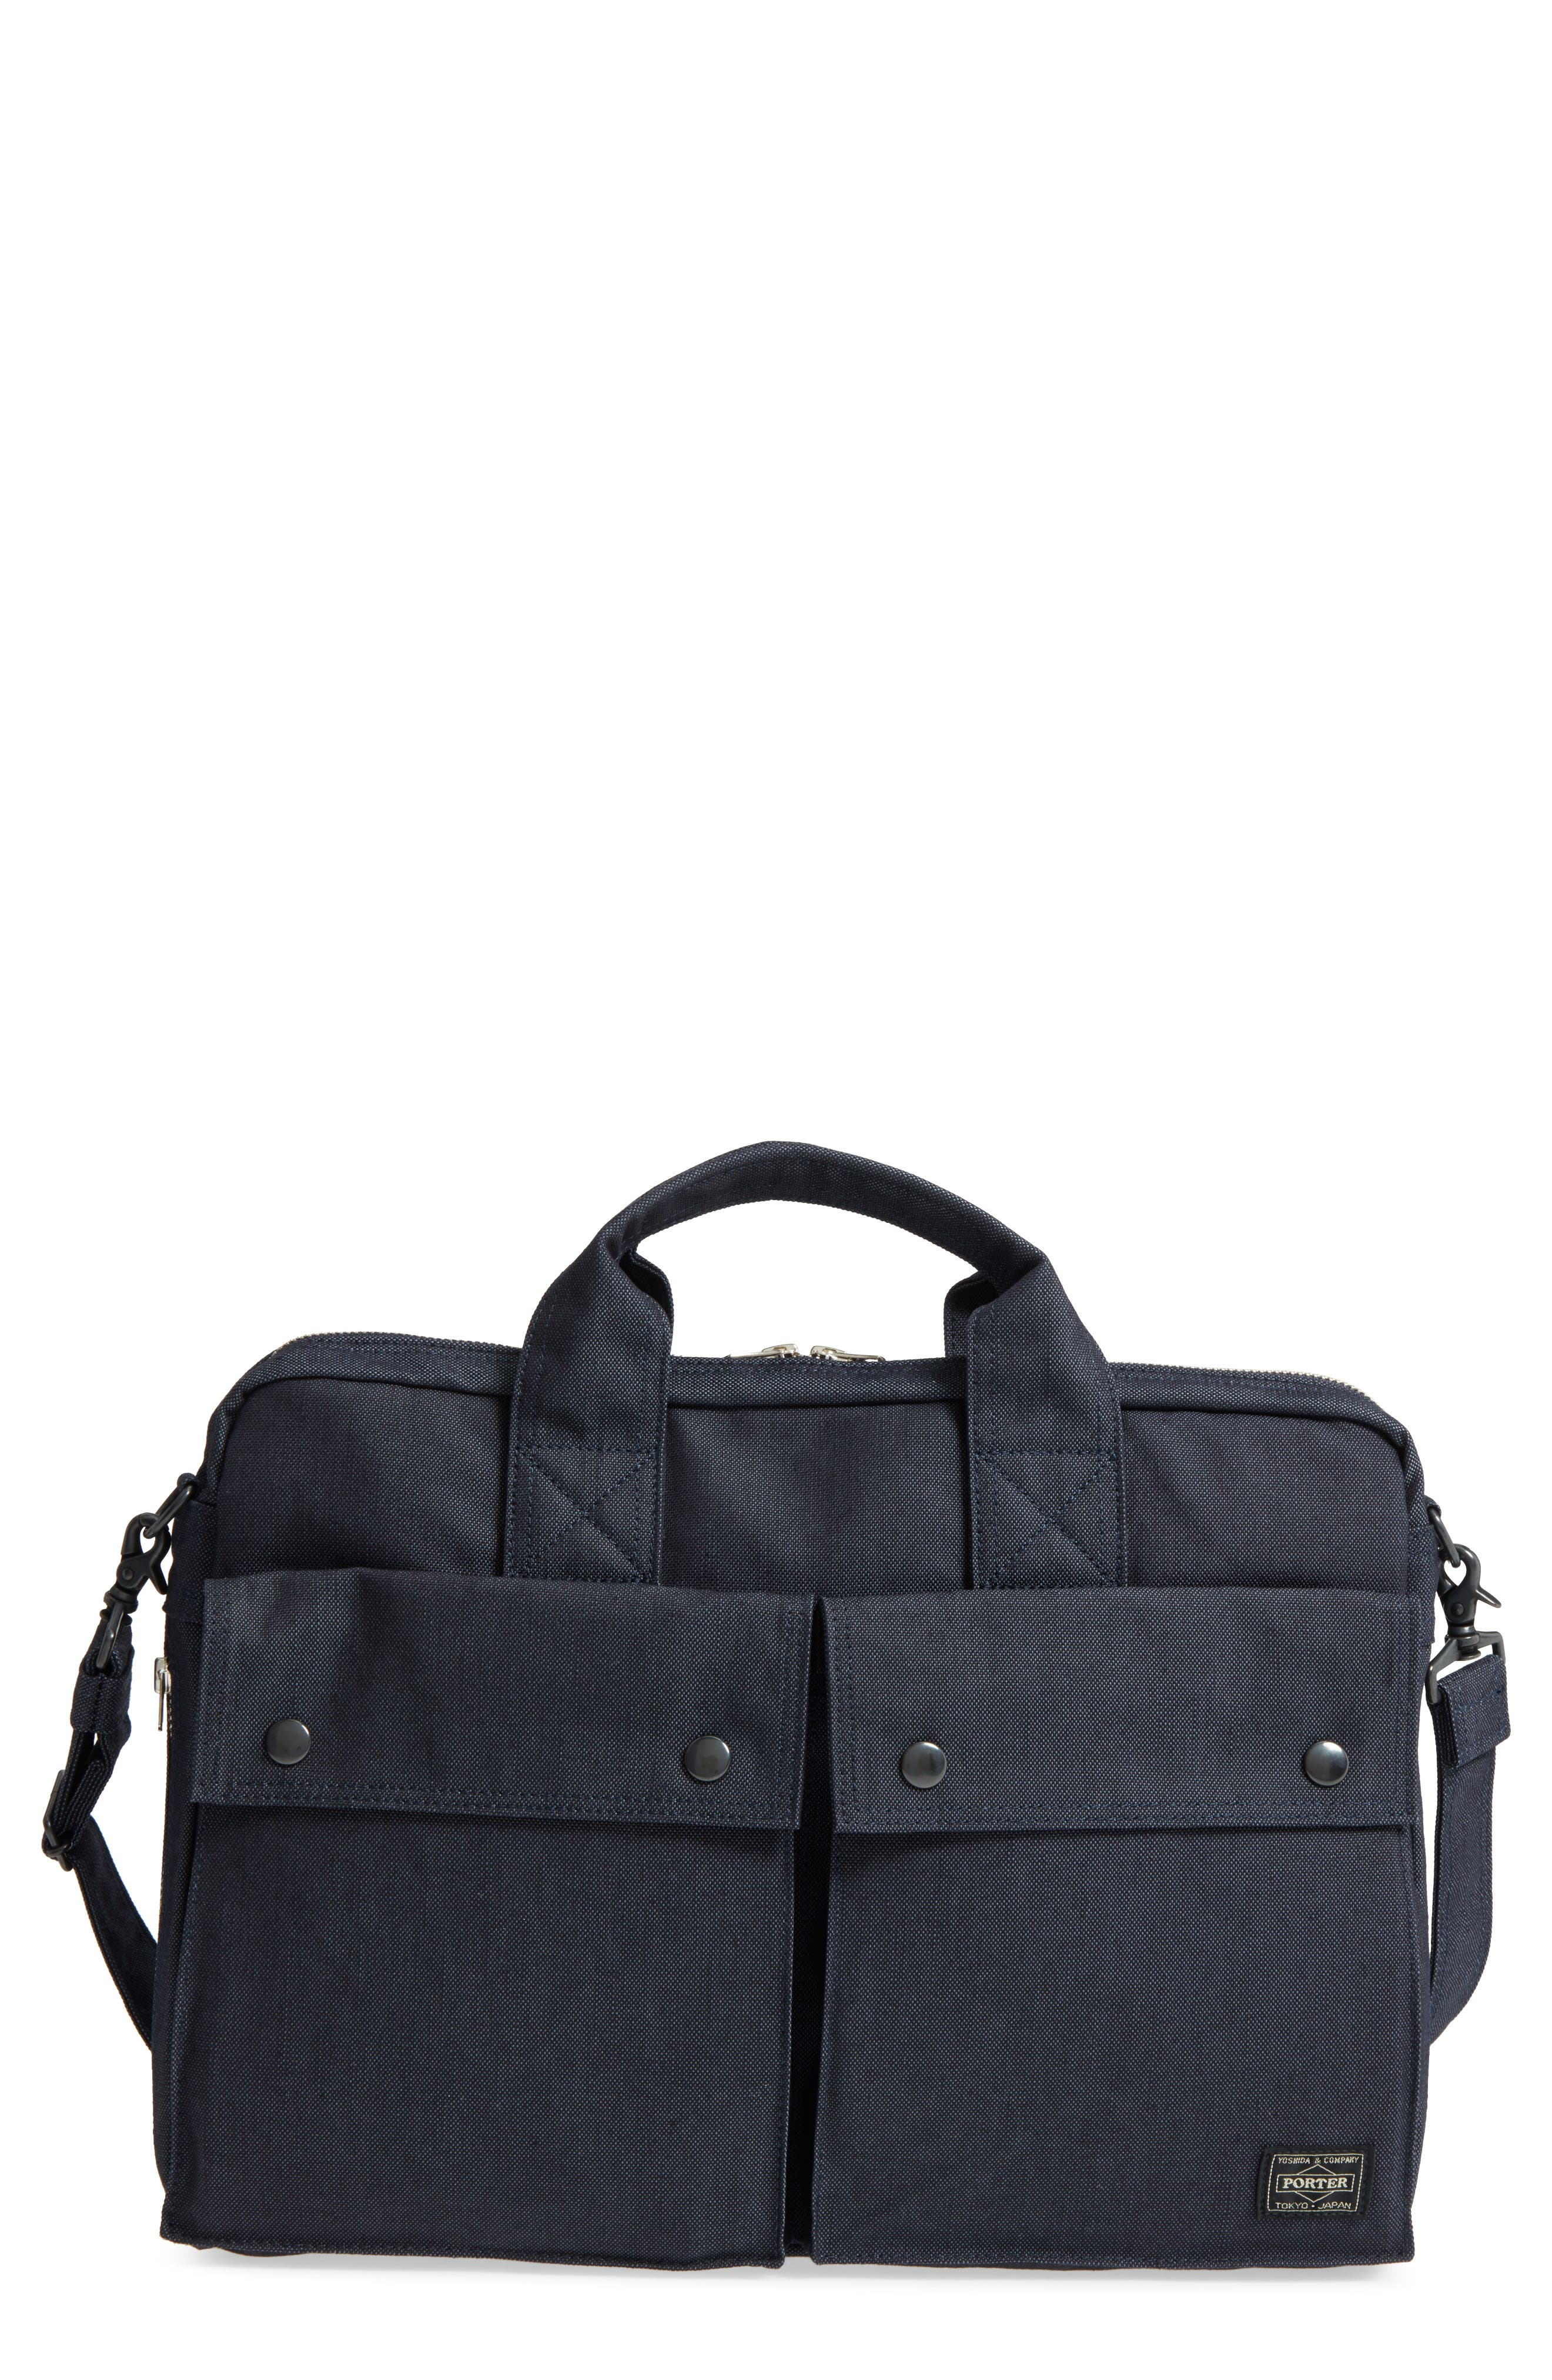 Porter-Yoshida & Co. Smoky Two-Way Briefcase,                             Main thumbnail 1, color,                             Navy